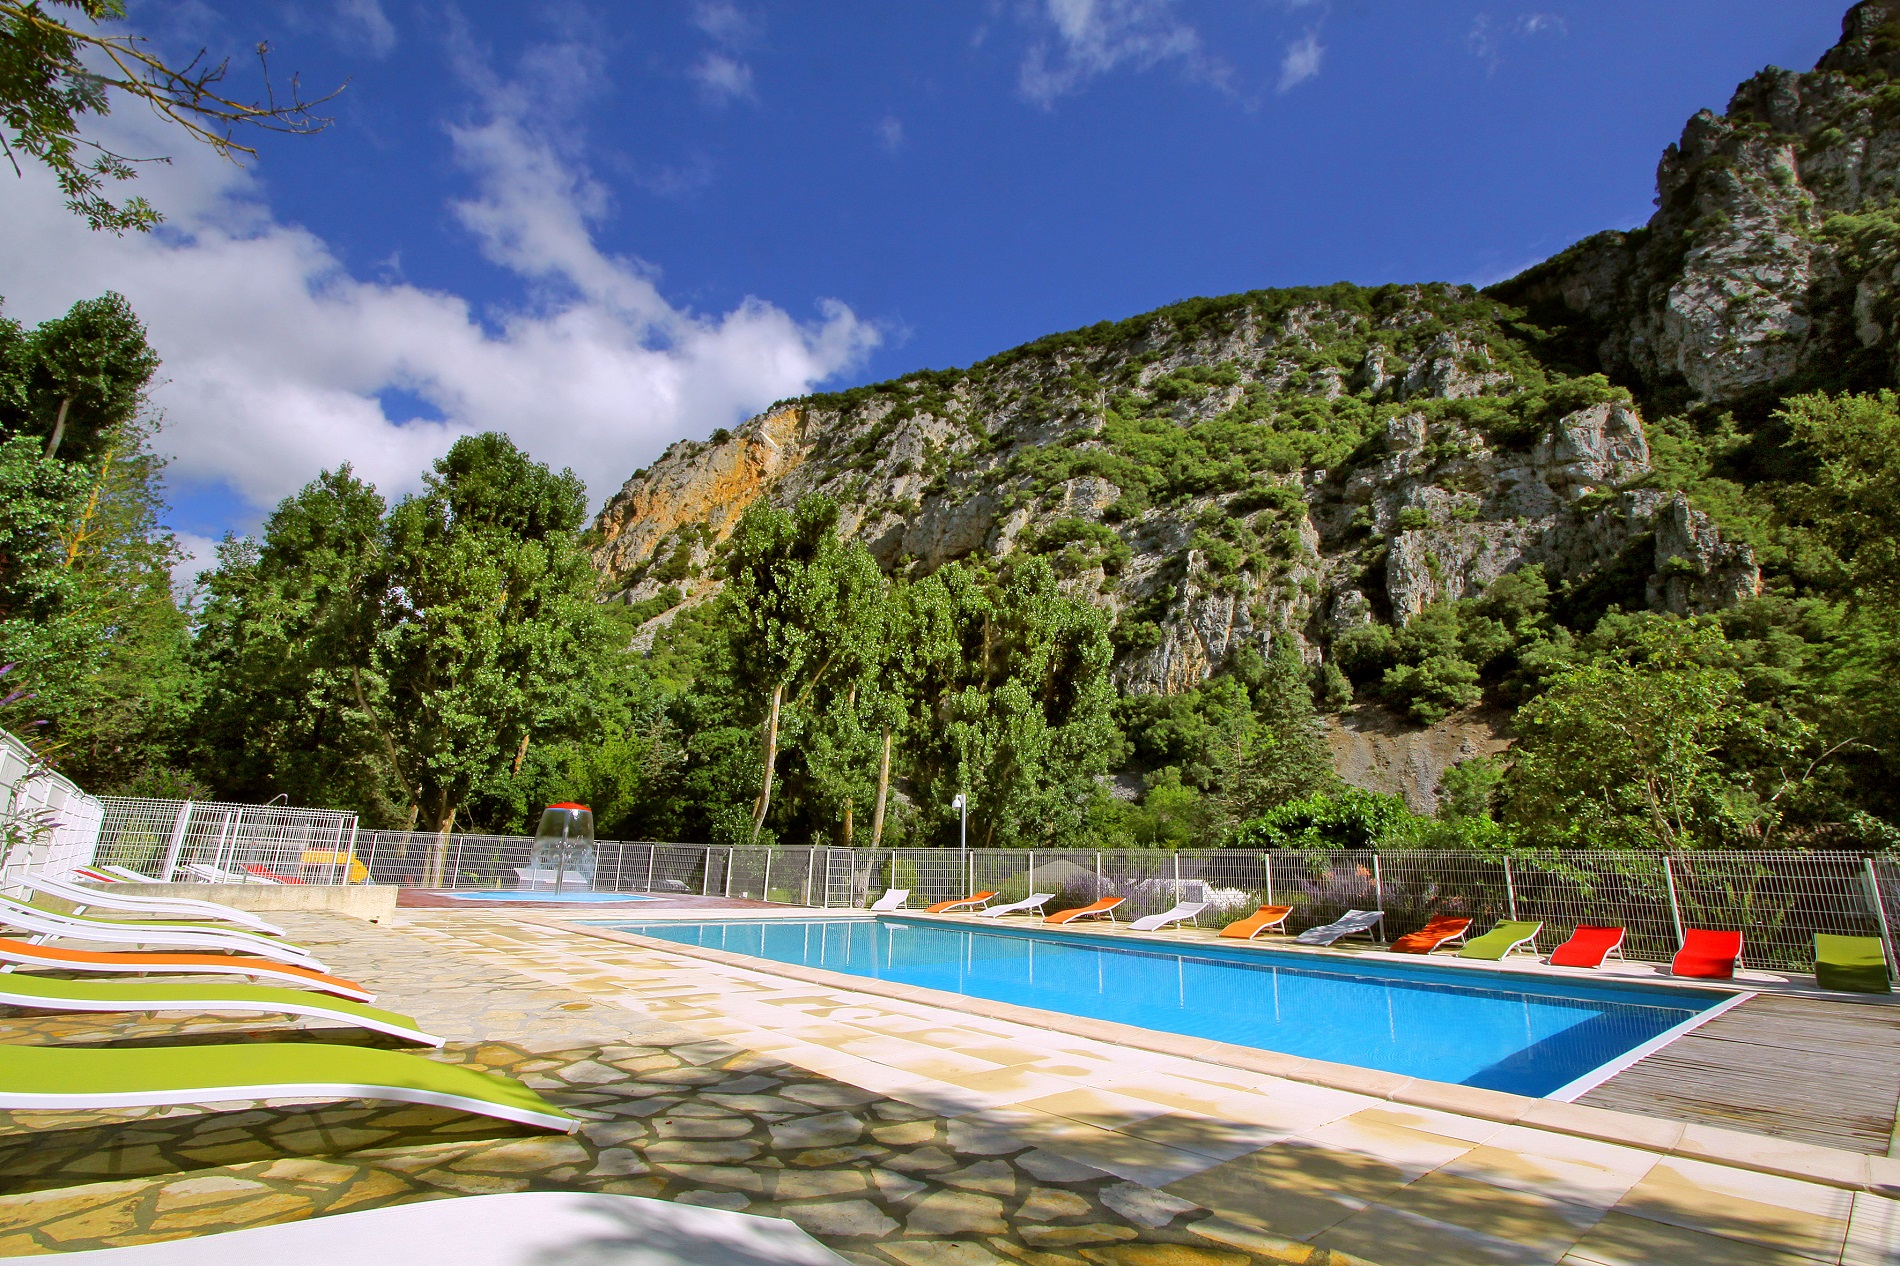 Camping pays catalan camping aude midi pyrenees le pont d alies - Camping carcassonne avec piscine ...